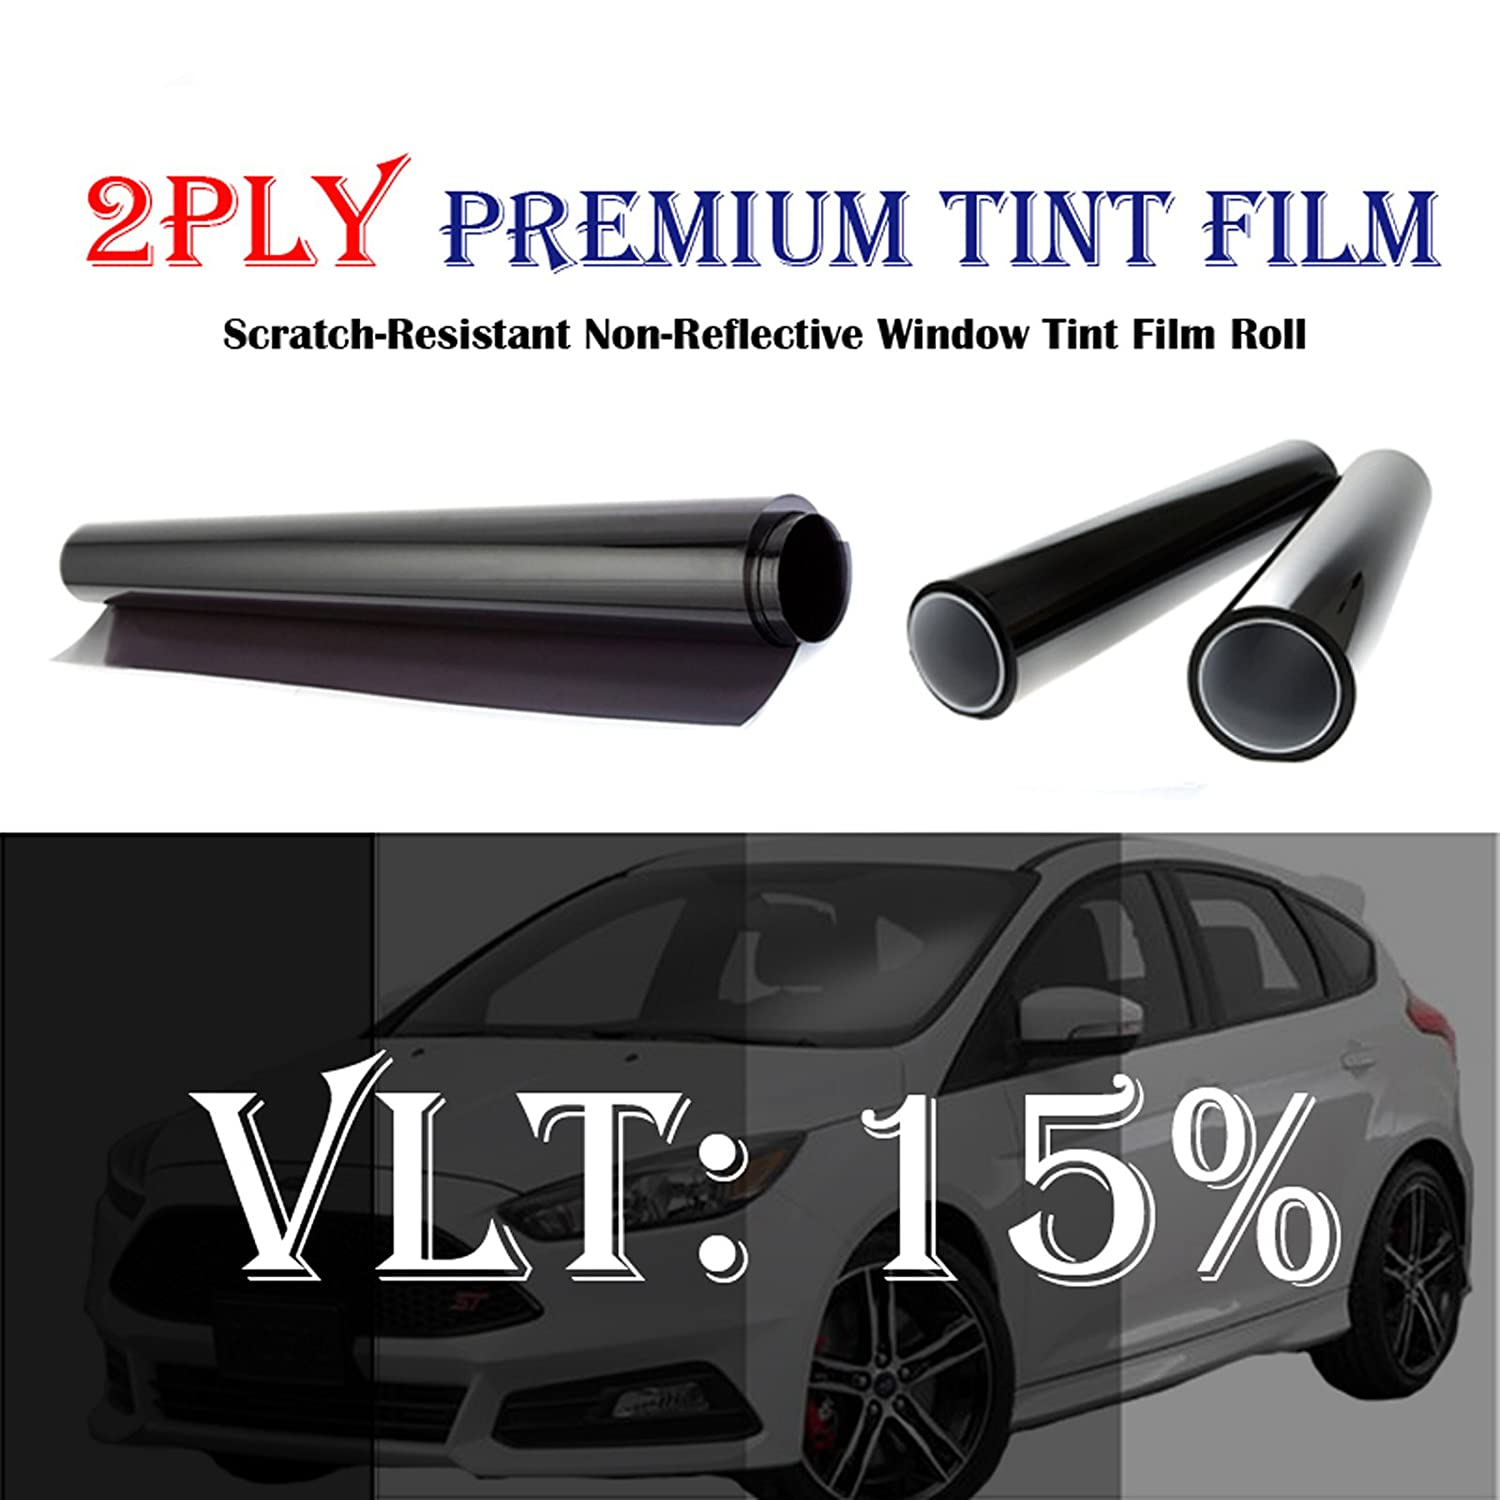 Mkbrother 2PLY 1.5 mil Premium 15% VLT 24 in x 100 Ft (24 x 1200 Inch) Feet Uncut Roll Window Tint Film Auto Car Home